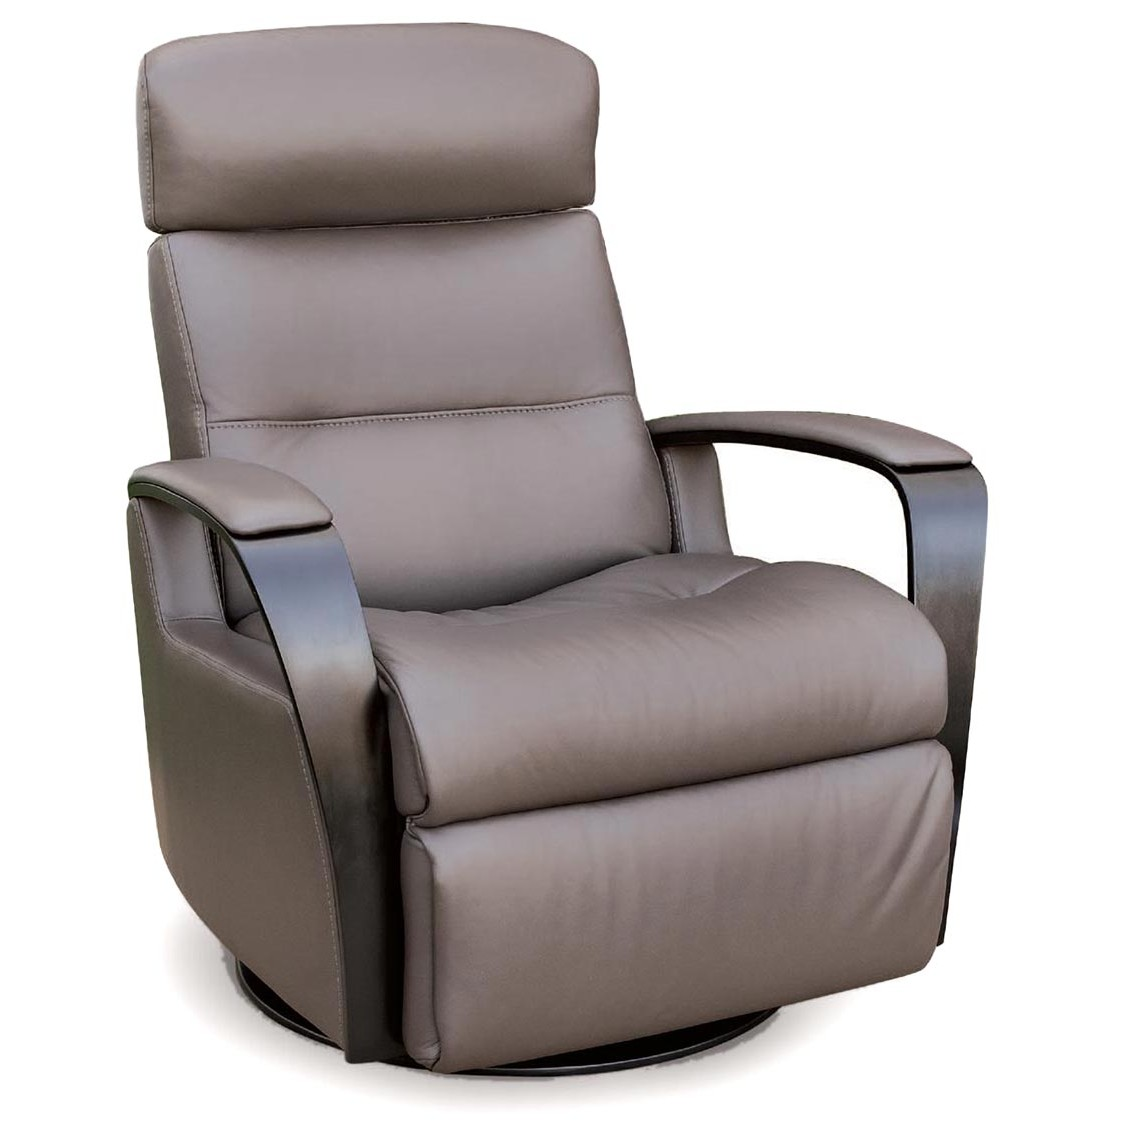 Img Peak Leather Relaxer Recliner From 1 527 75 By Img